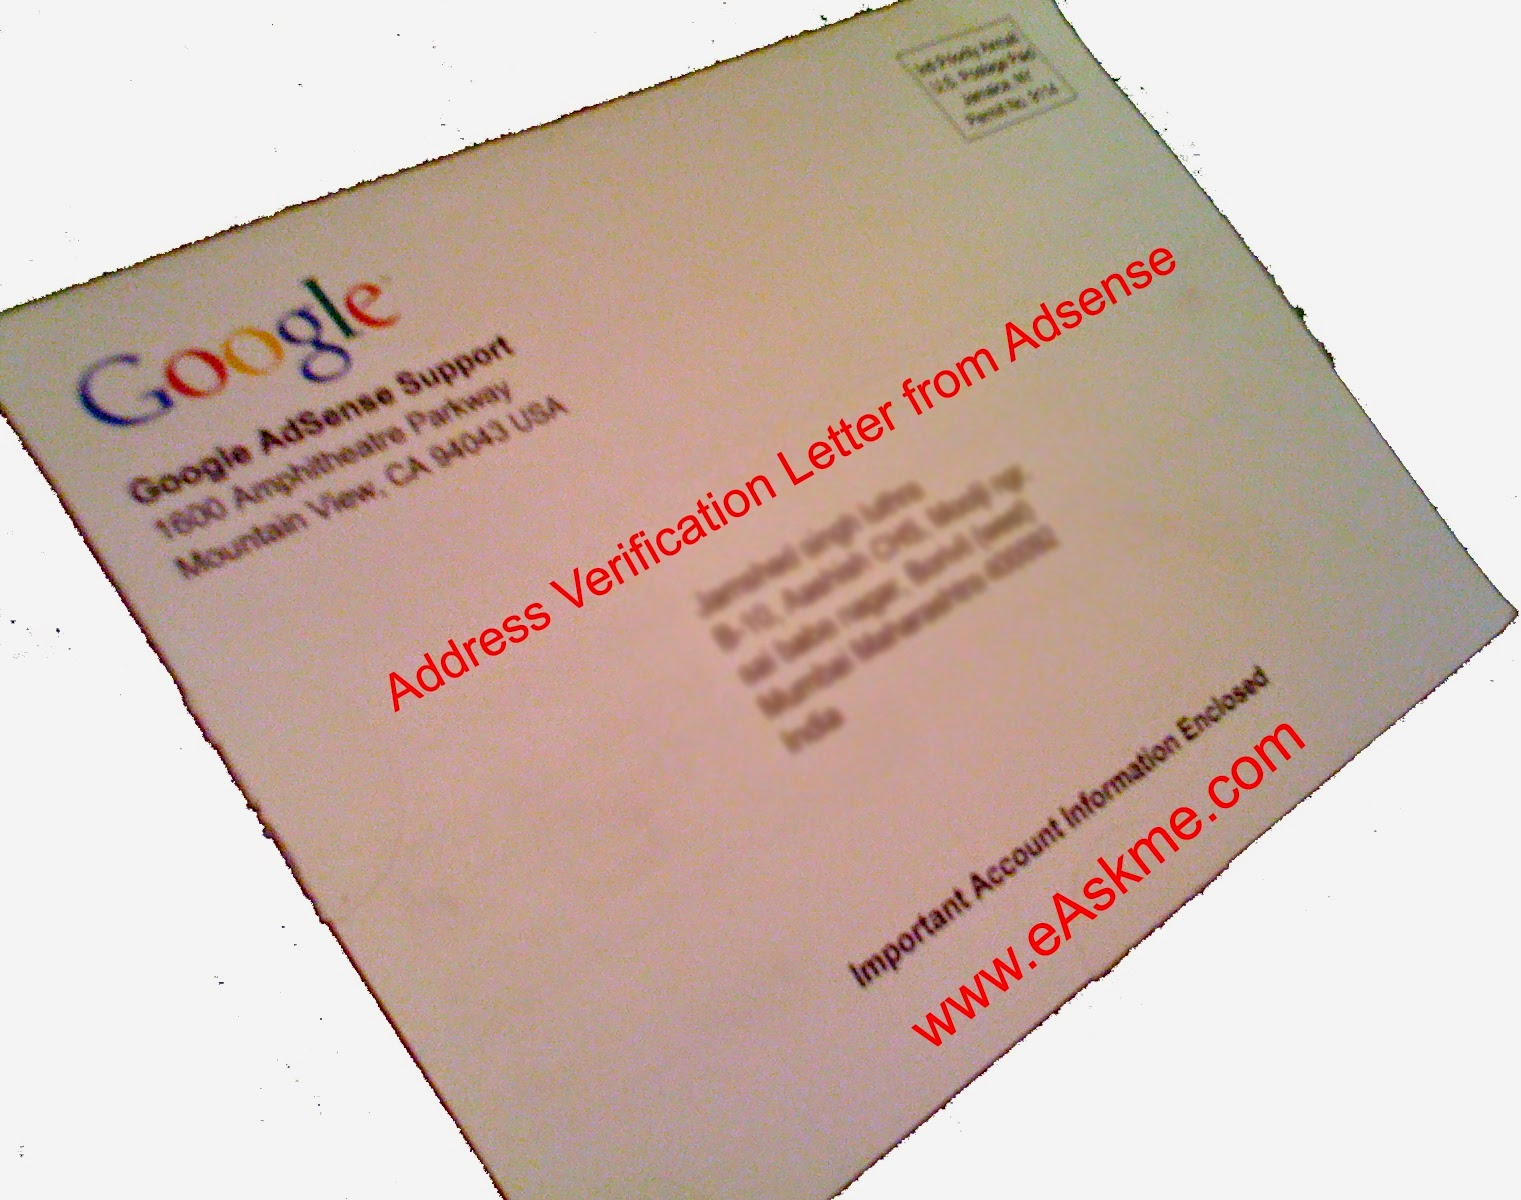 How To Verify Address With Adsense Verification Pin